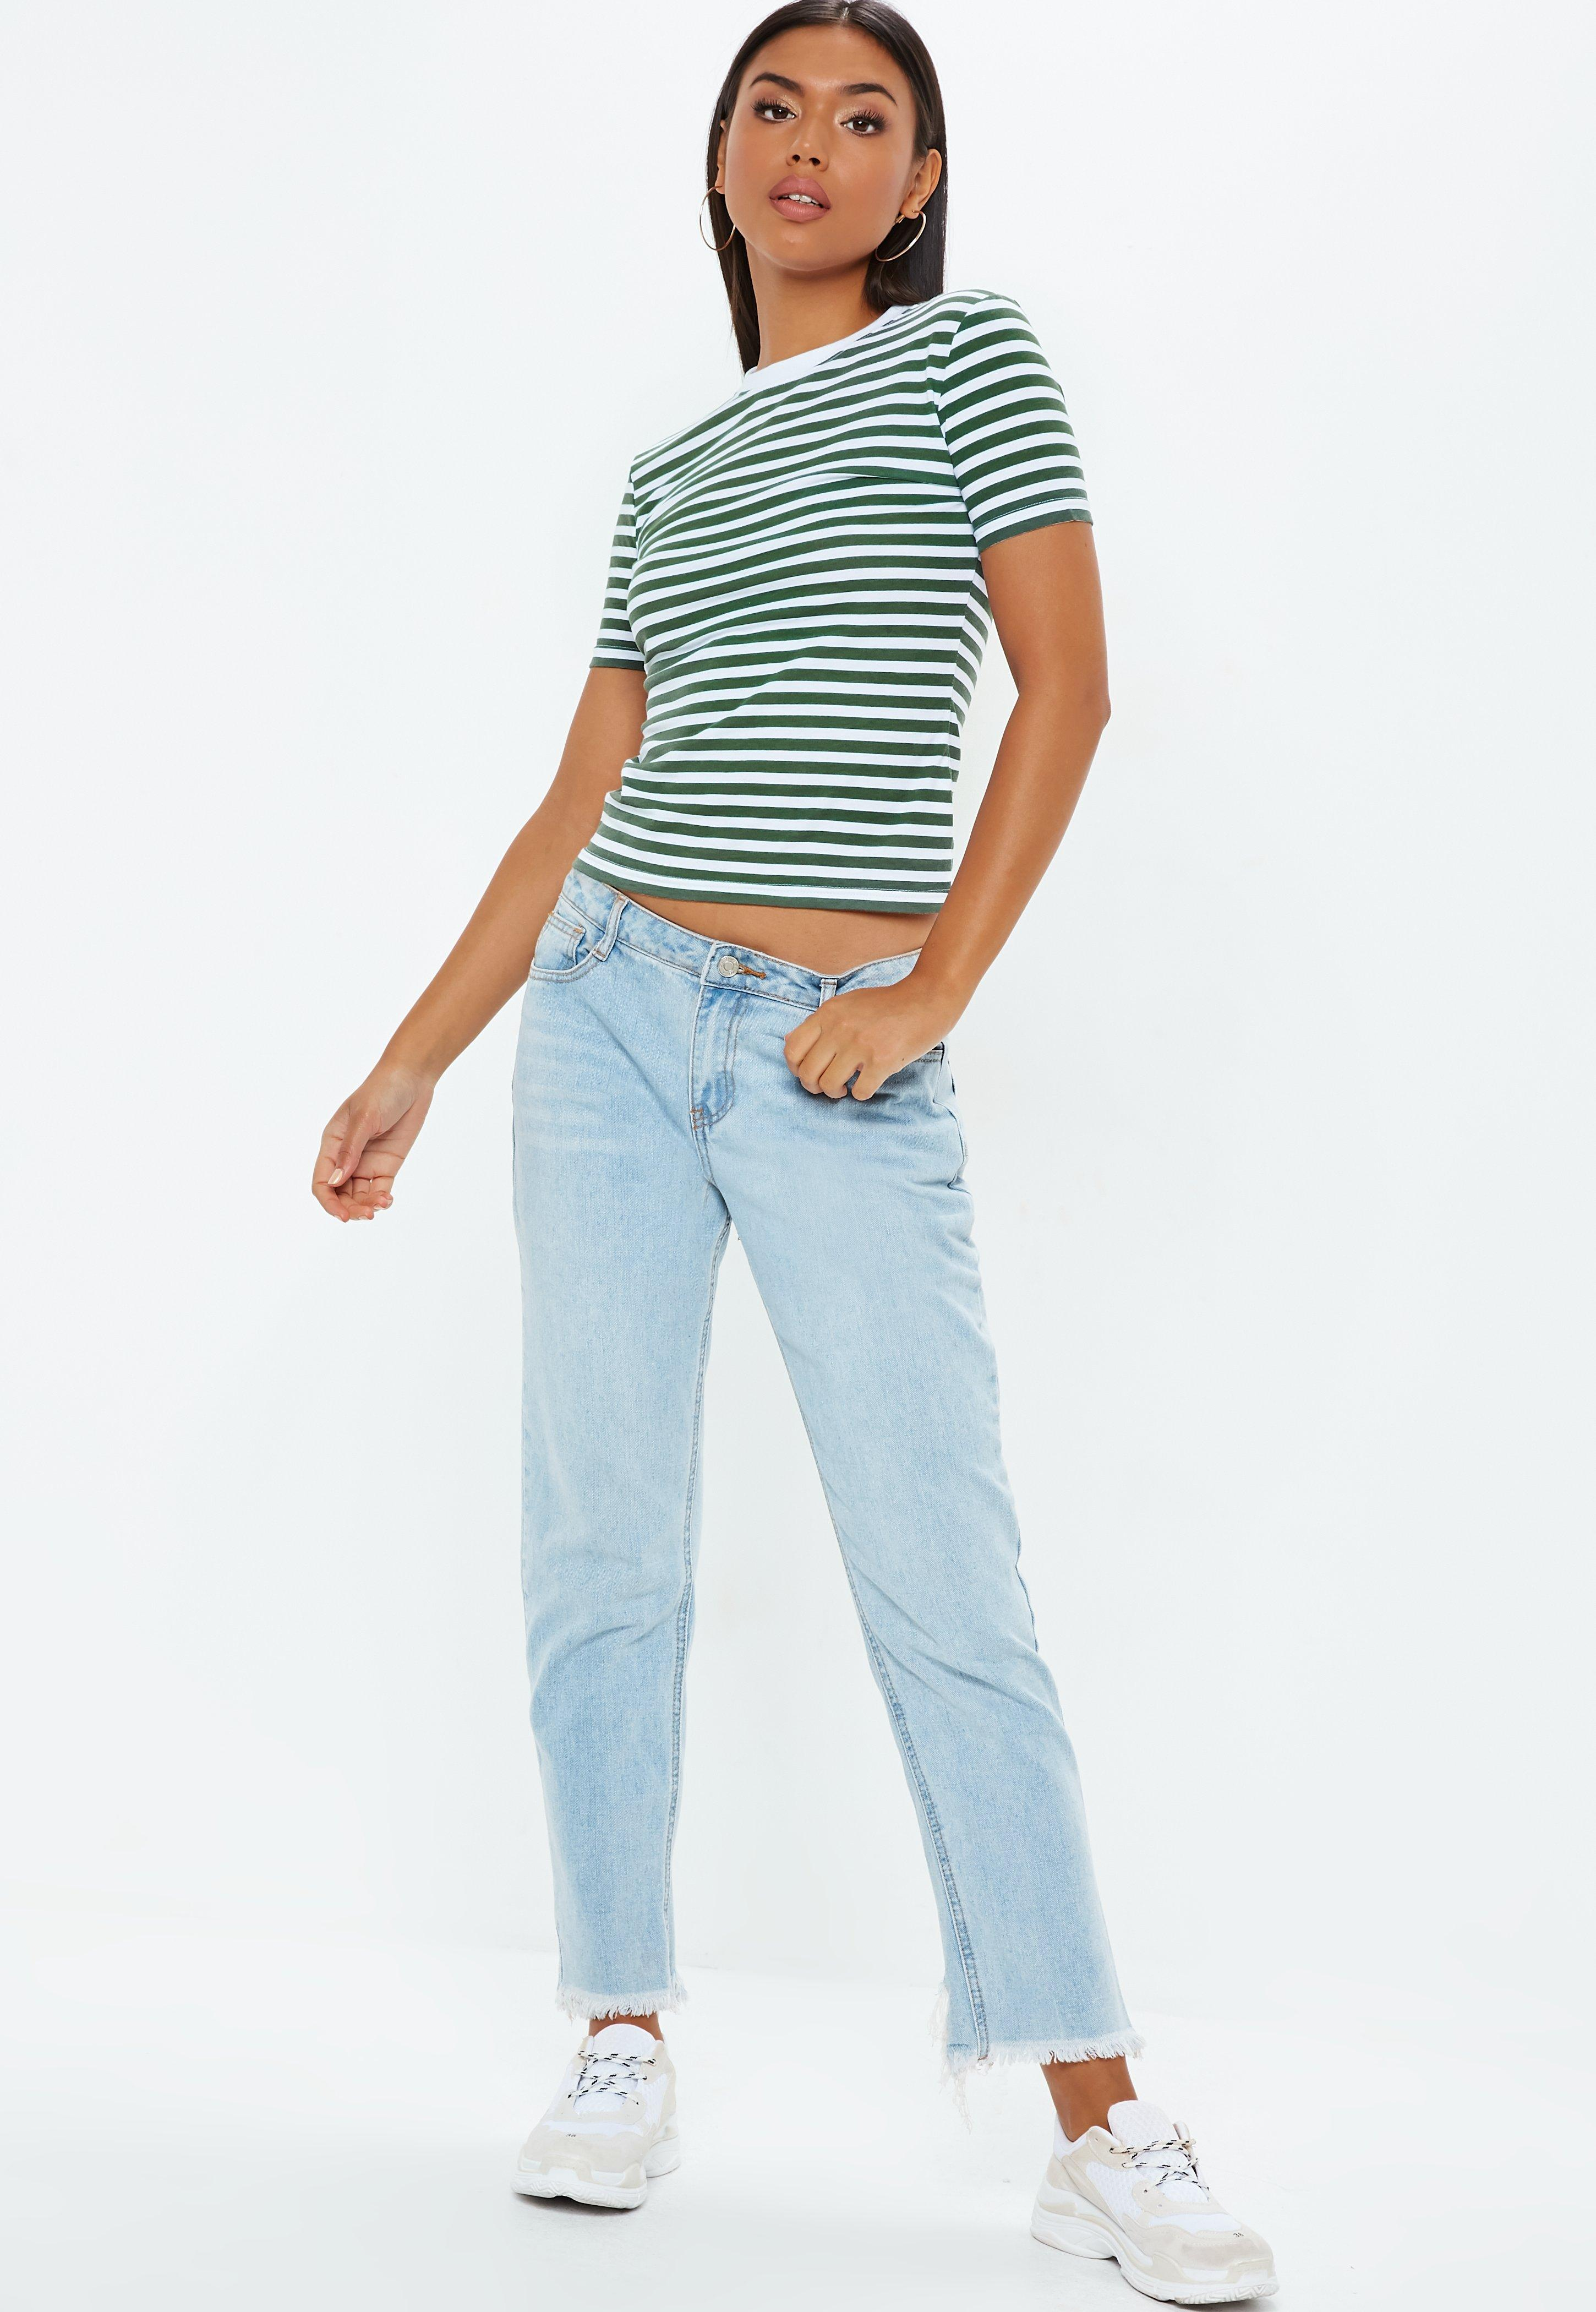 c0bbc8a0f916 Lyst - Missguided Green Striped Fitted T Shirt in Green